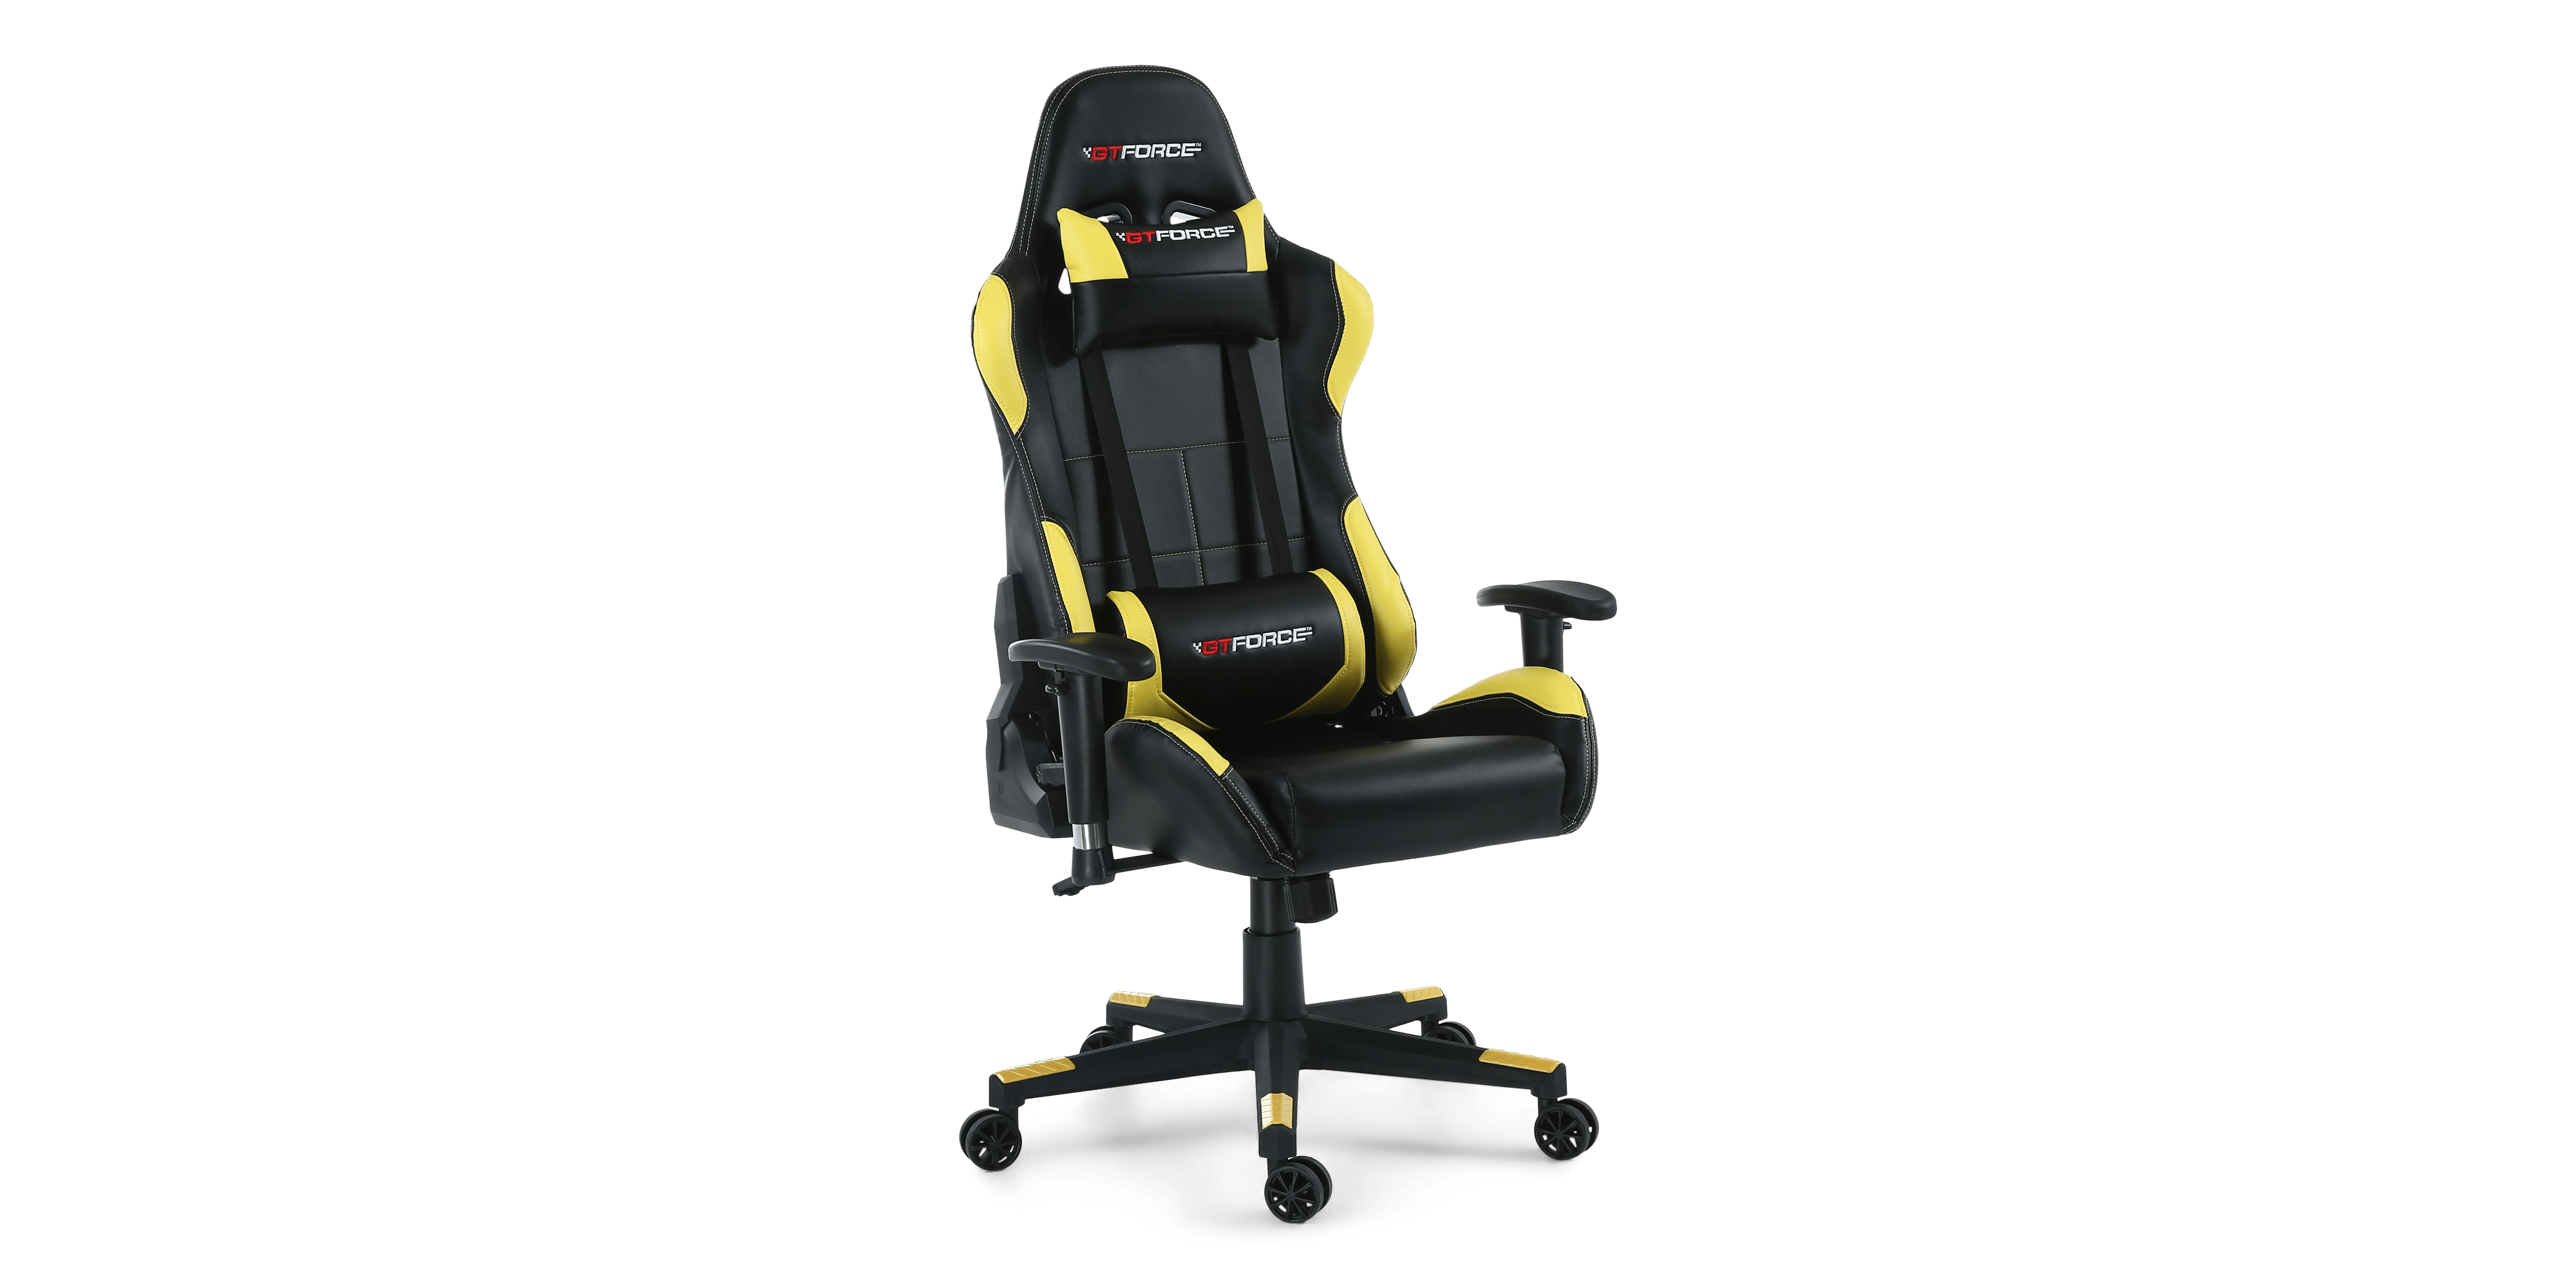 pro gaming chairs uk posture guidance chair gtforce bx with recline in black yellow